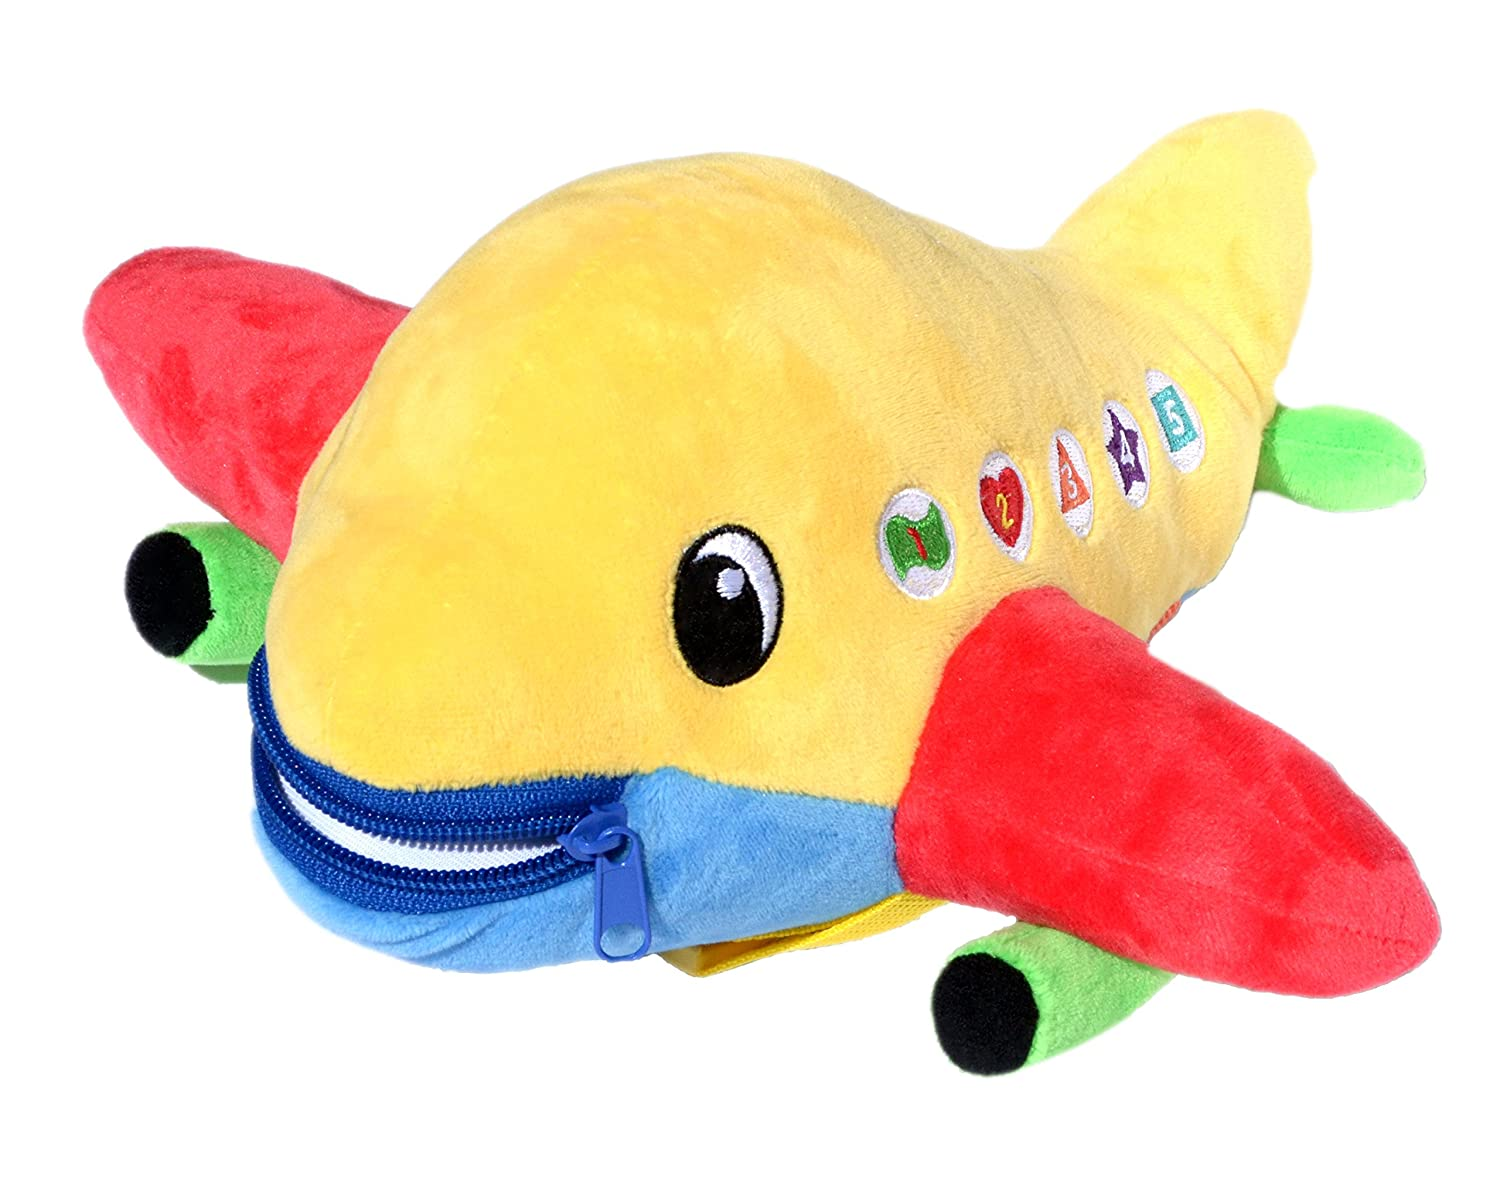 BUCKLE TOY Bolt Airplane Toddler Early Learning Basic Life Skills Children's Plush Travel Activity